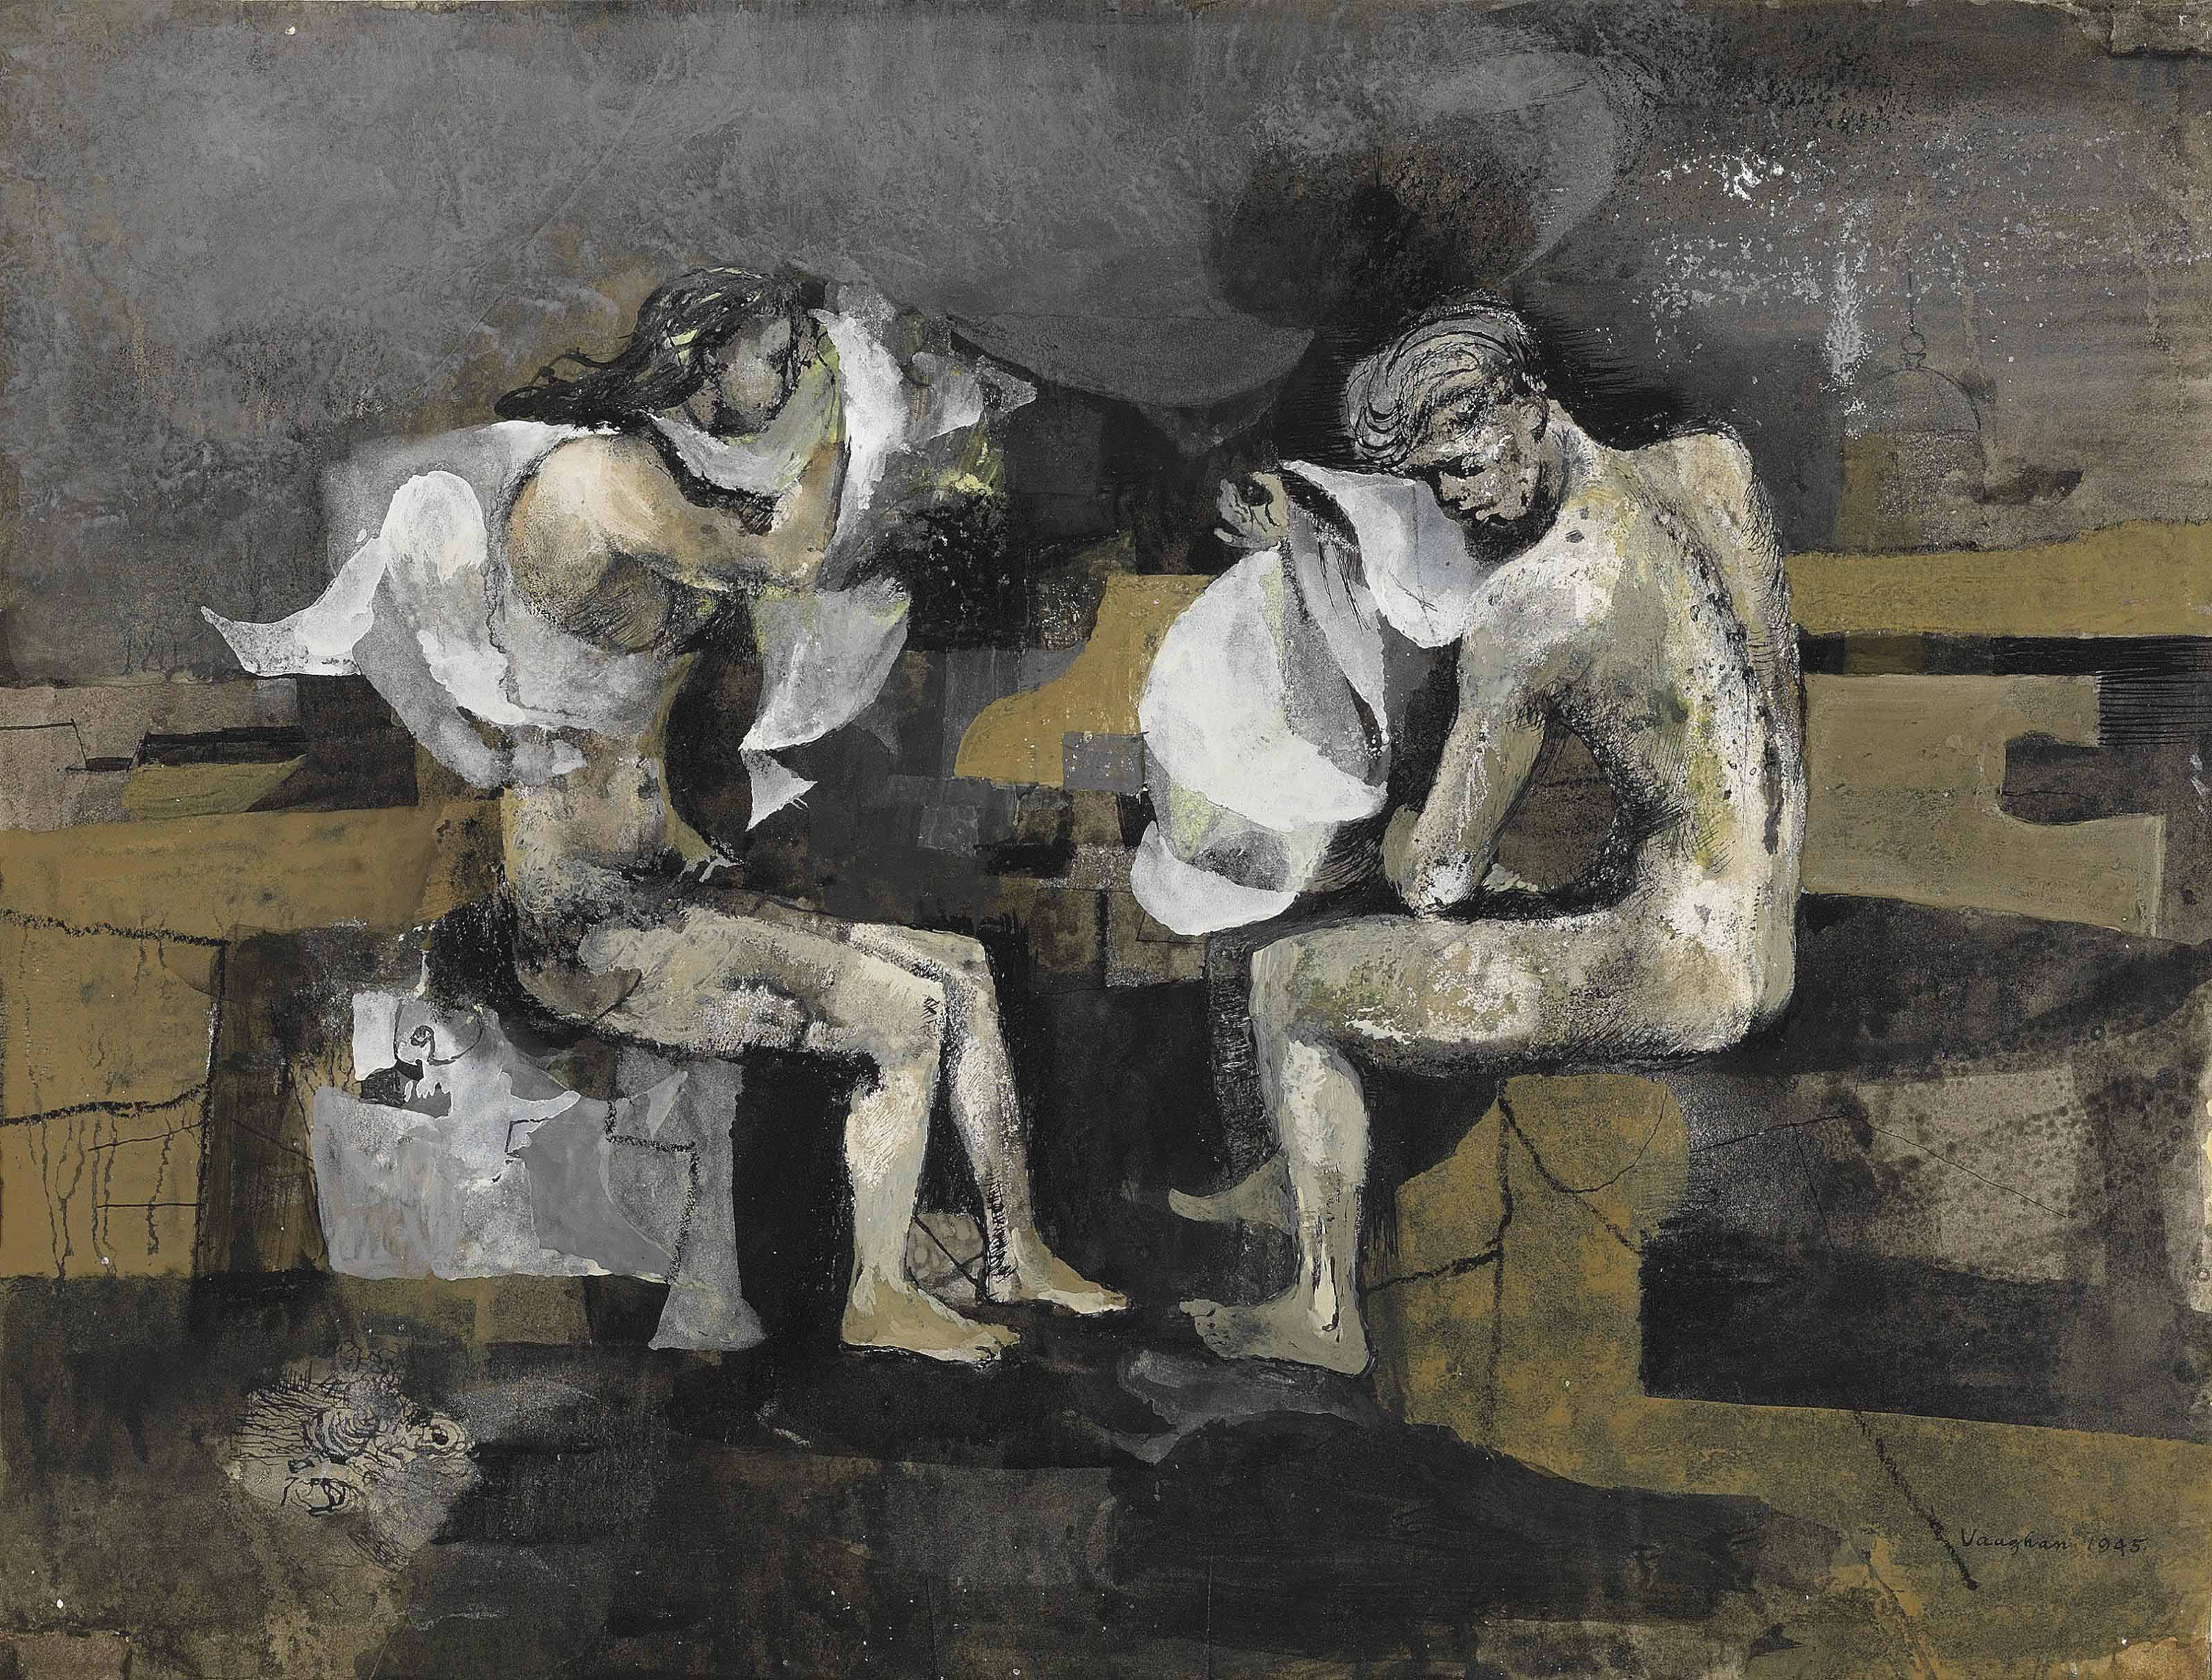 Seated bathers on the shore